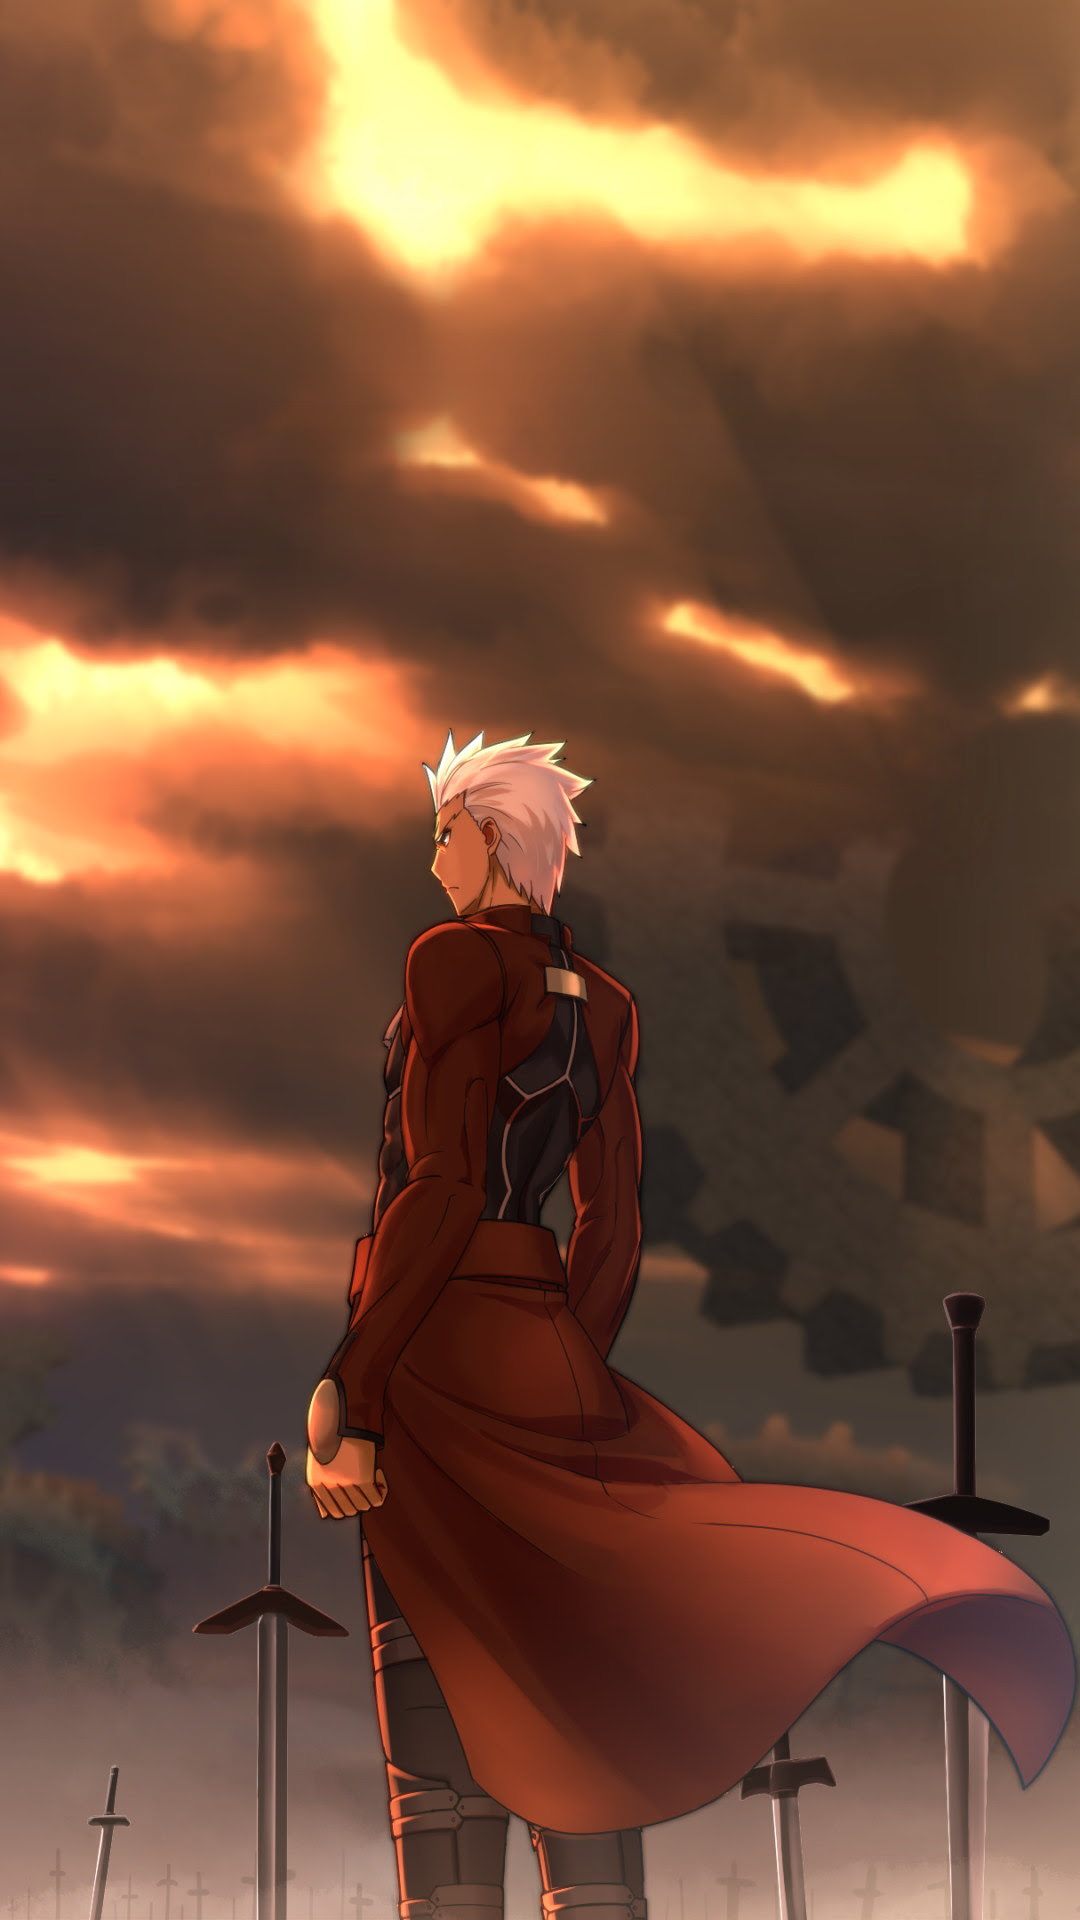 Fate Stay Night Iphone Wallpaper 56 Images